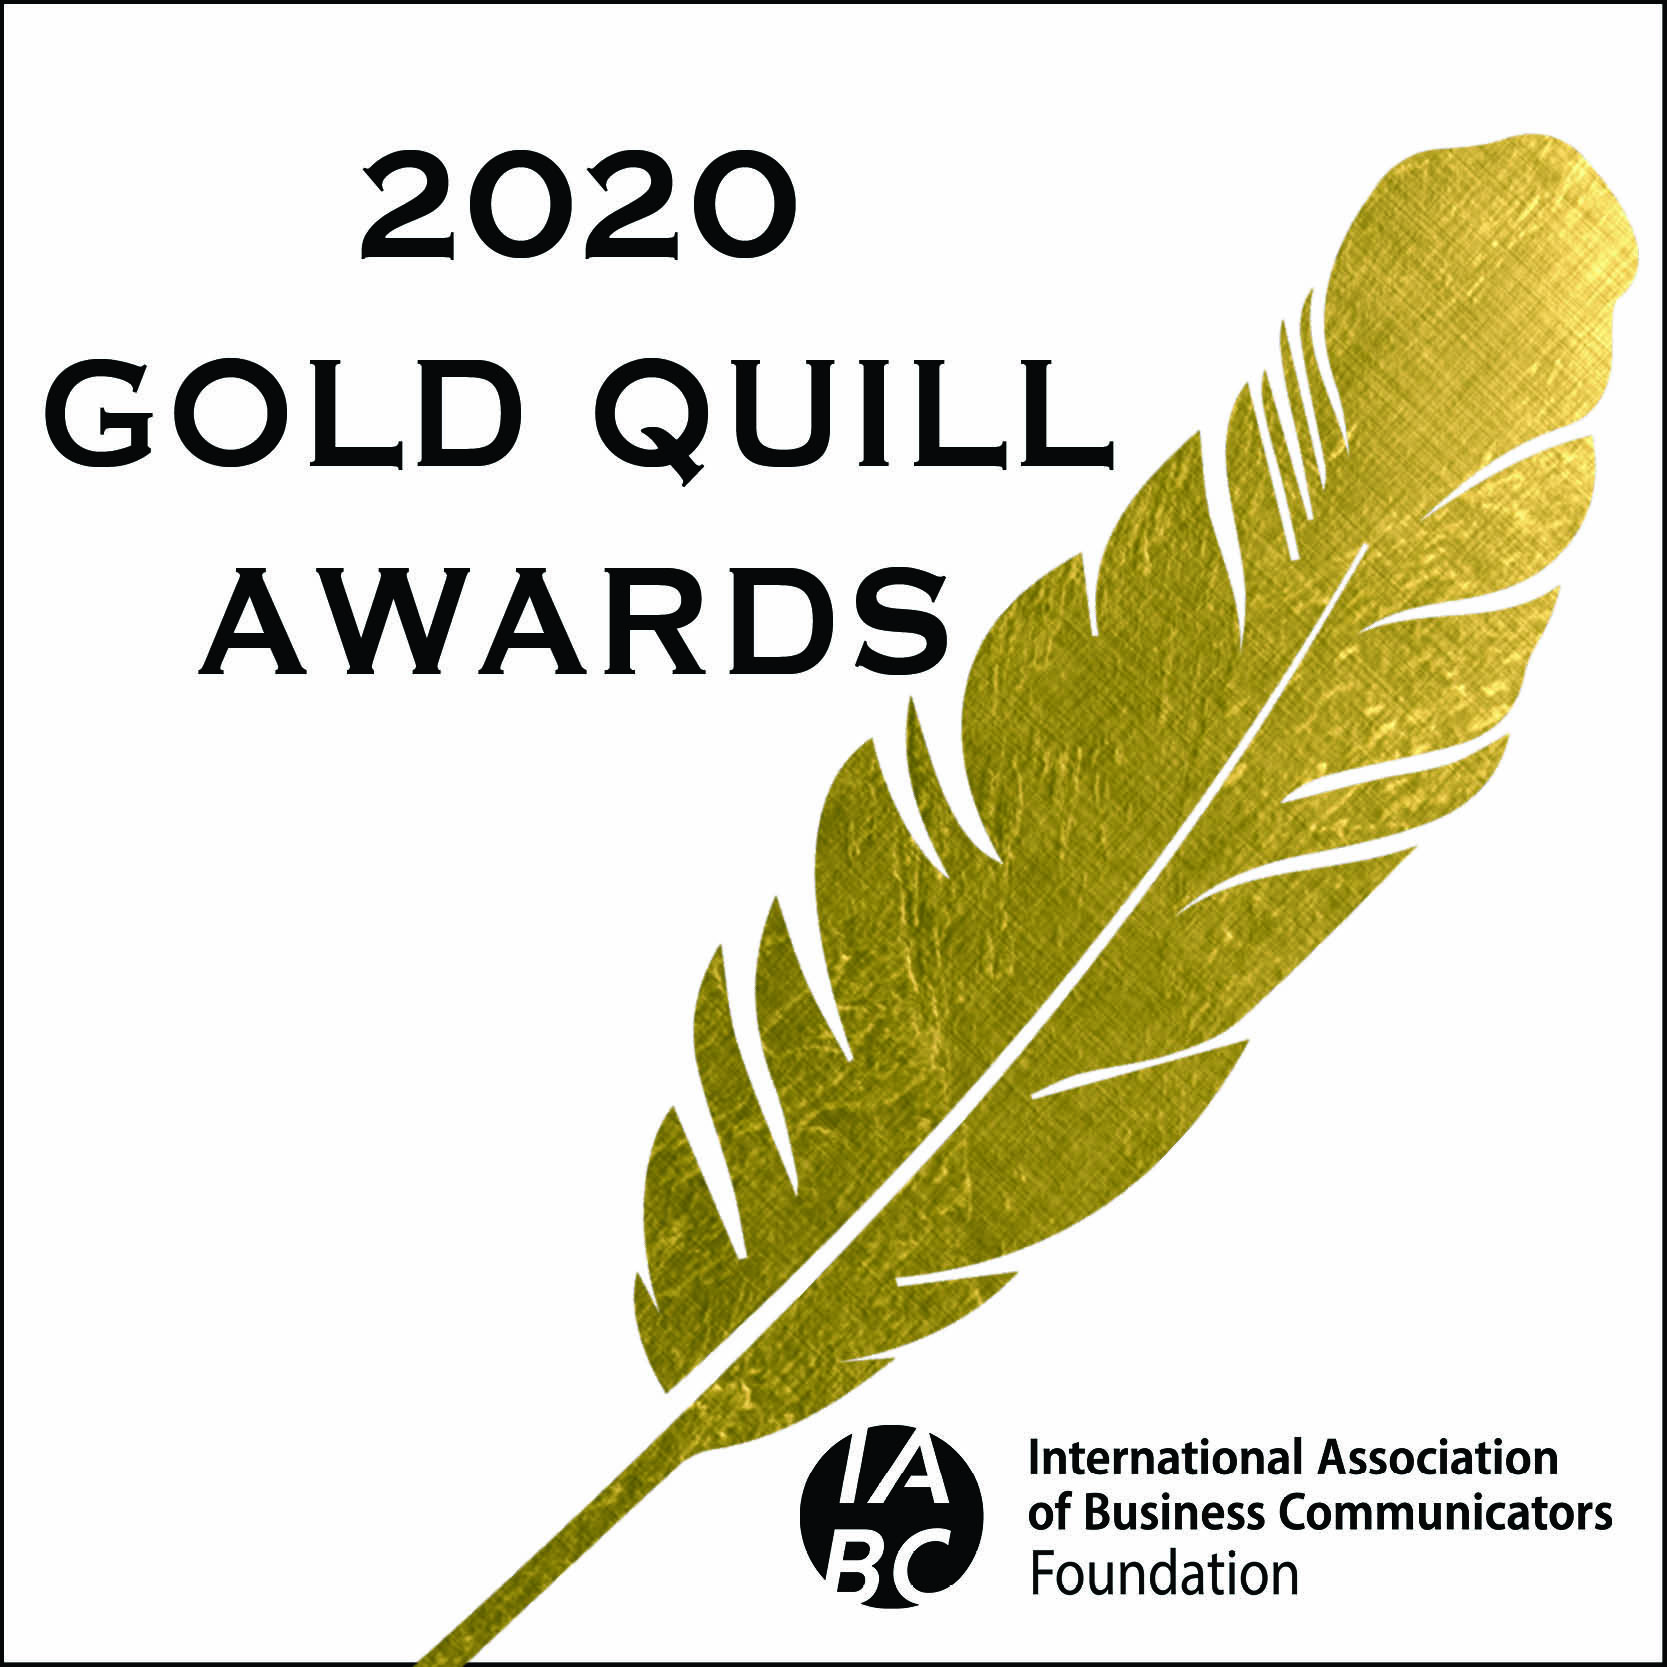 Gold Quill award logo